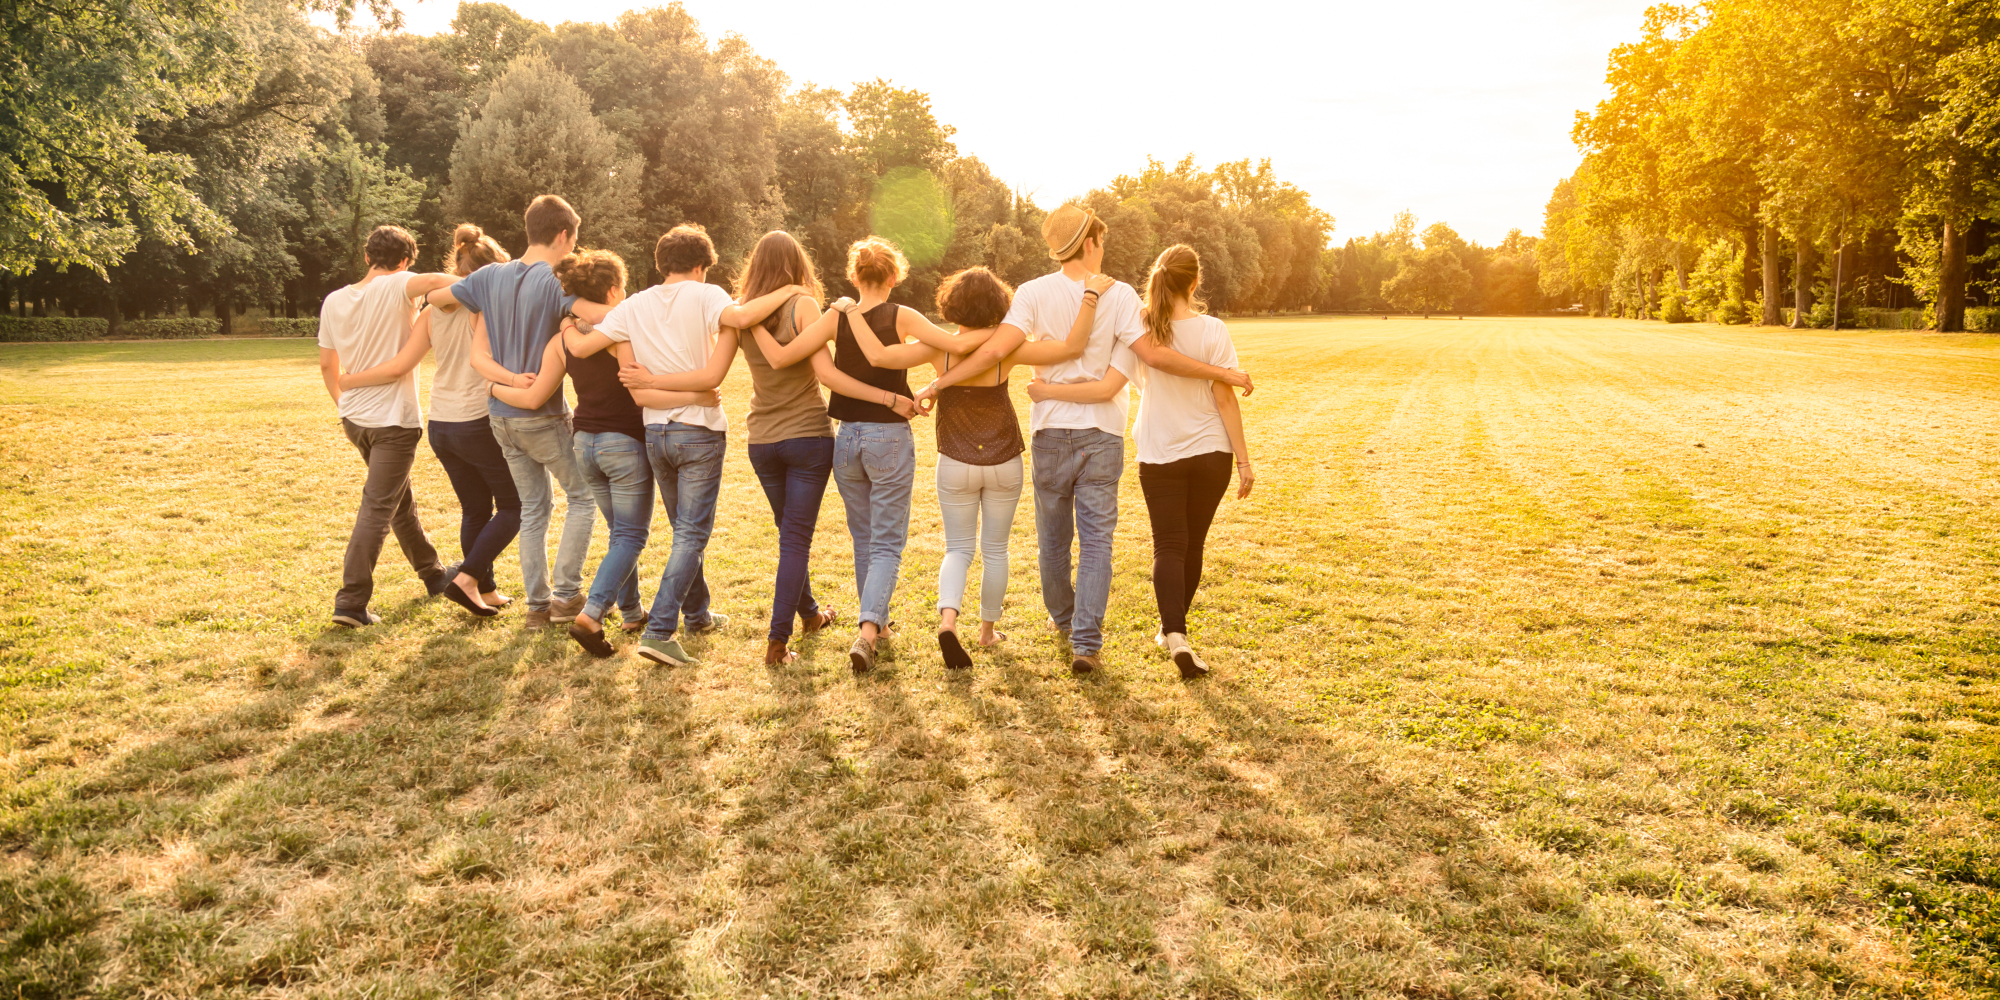 Friends - Which One Are You? | HuffPost UK